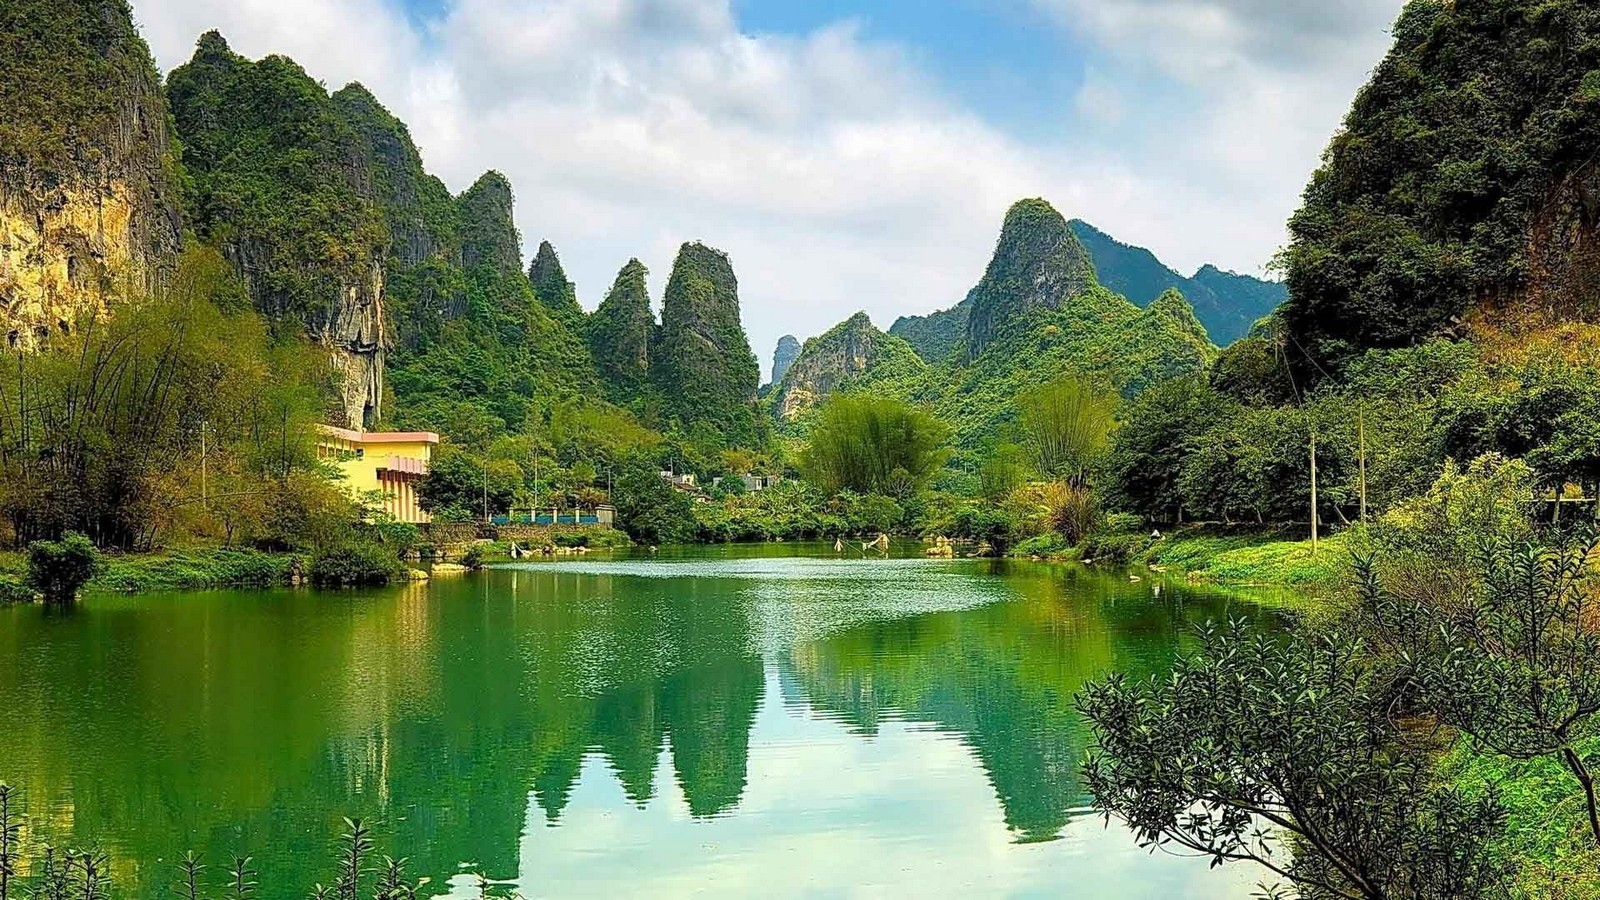 General 1600x900 mountains lake limestone China forest water reflection trees shrubs cliff nature landscape